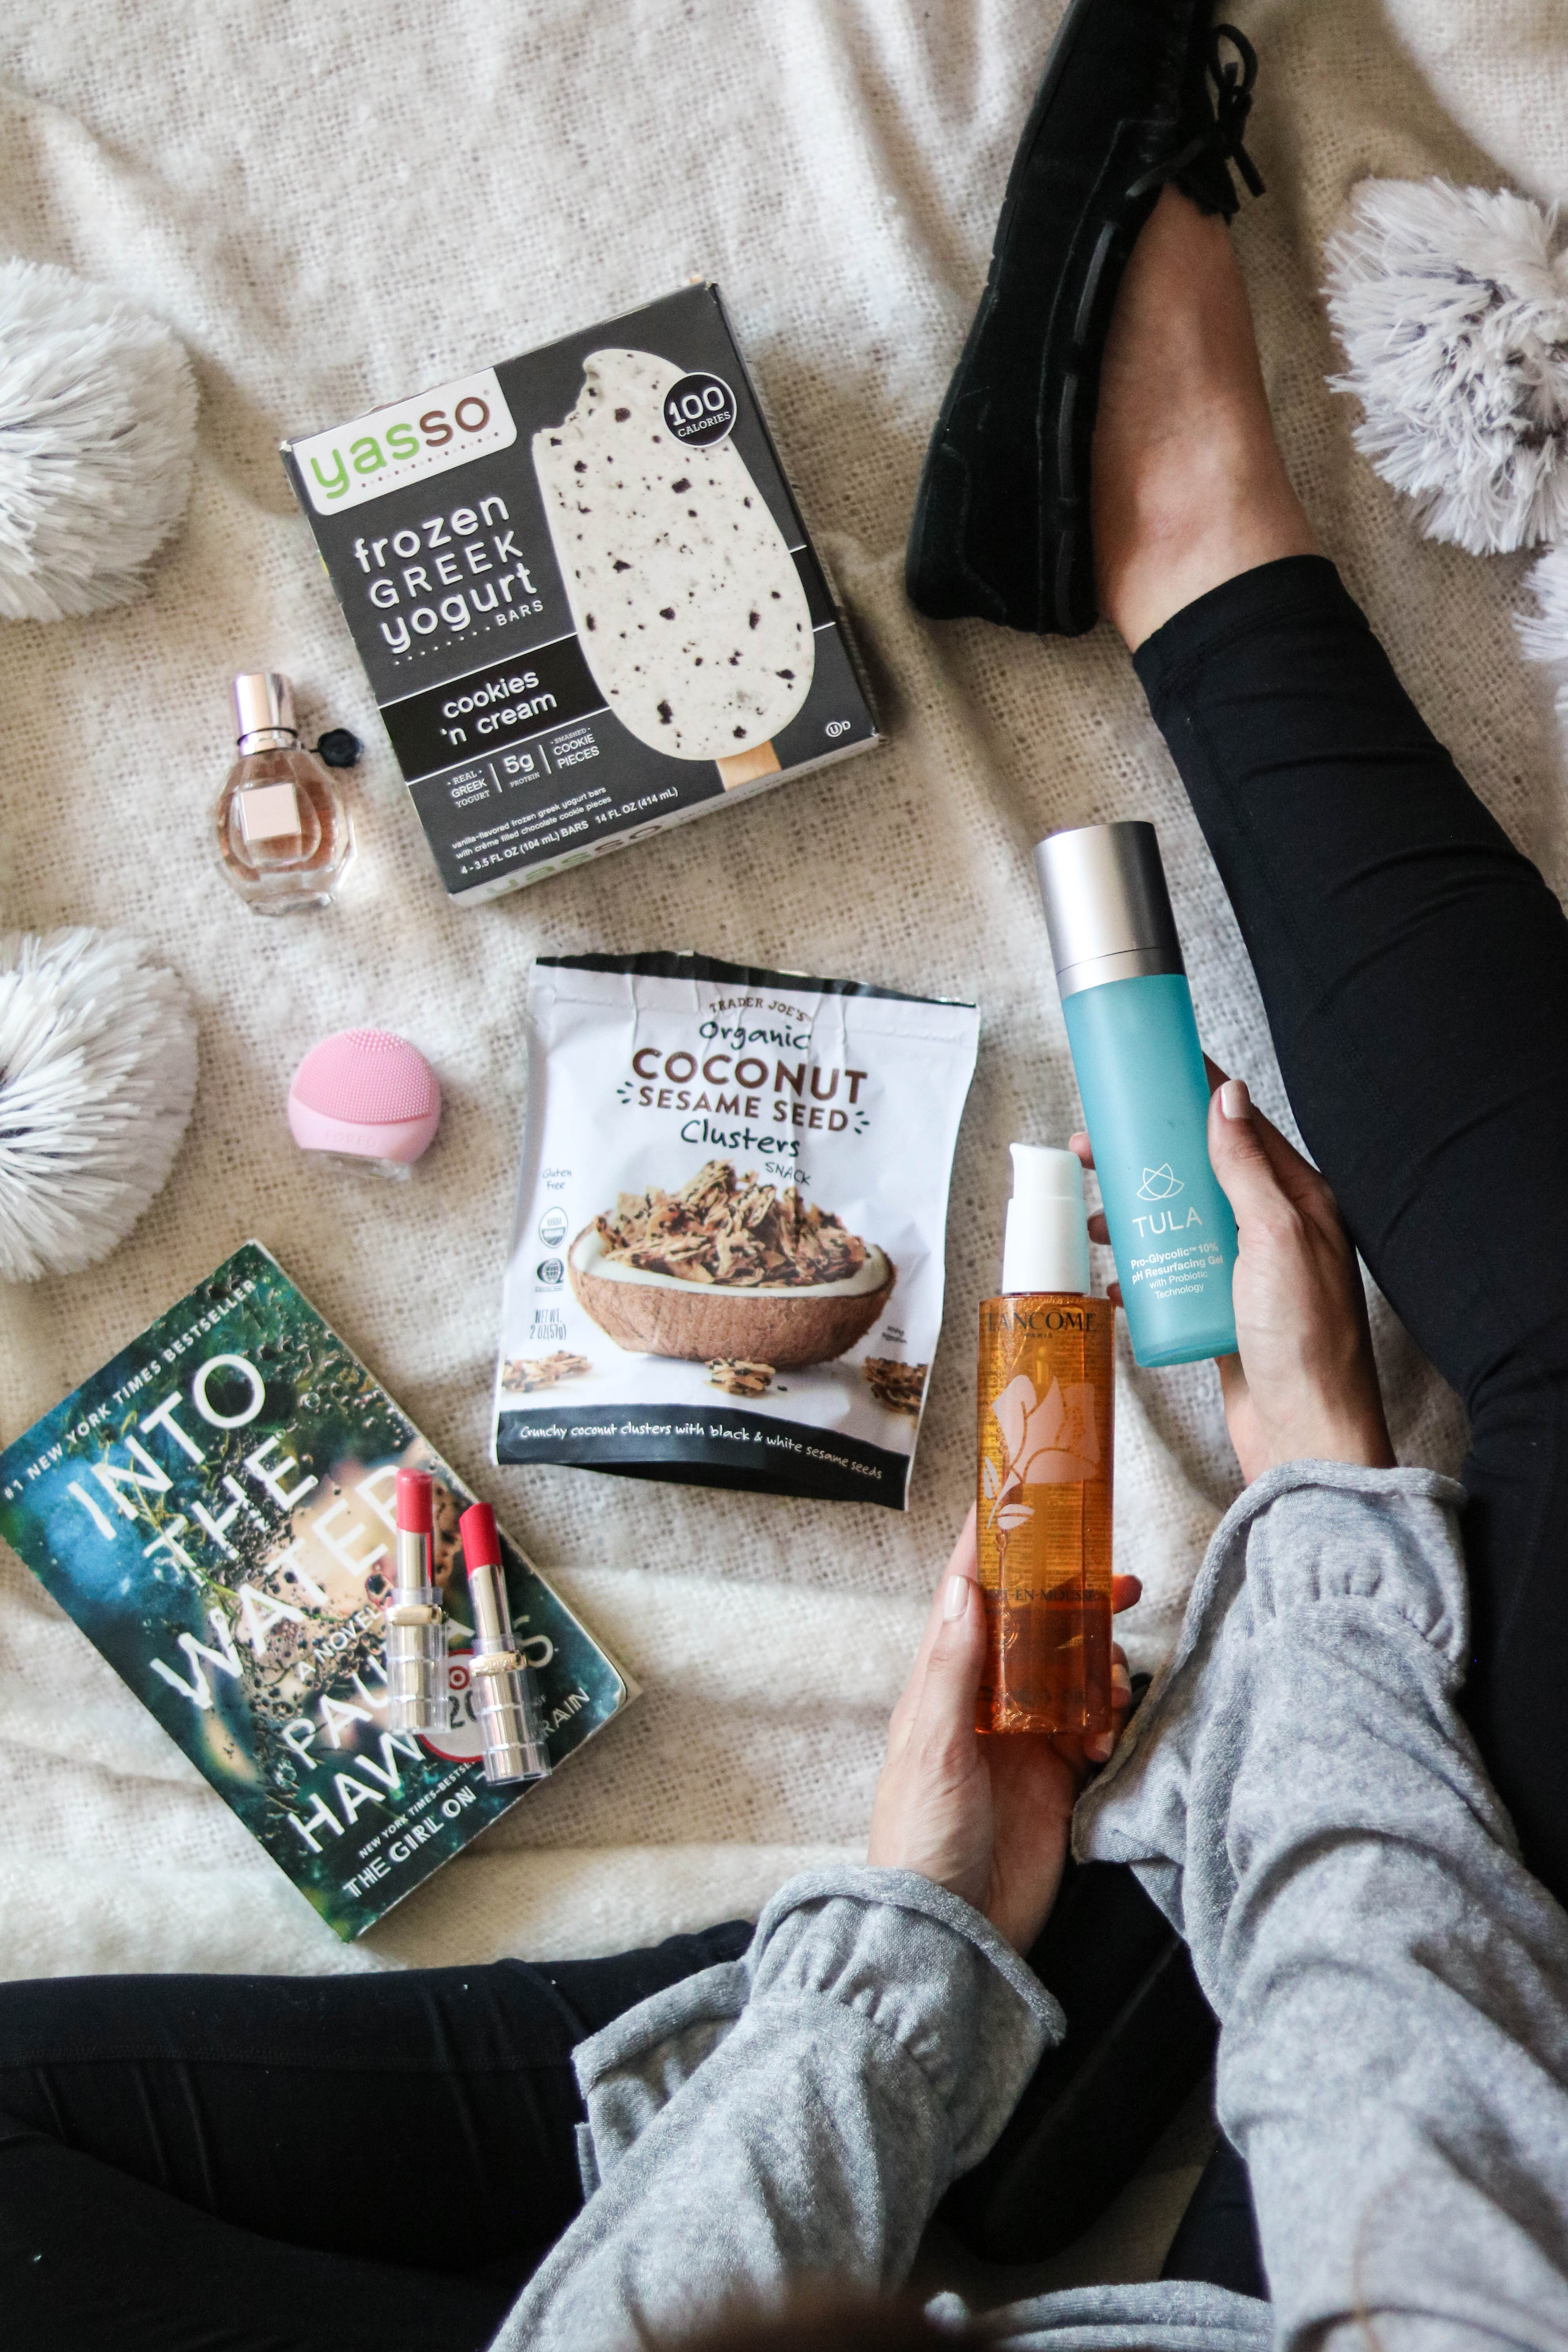 Cool Sh*t I Lovelovelove - Monthly Favorites, August 2018 - Yasso Greek Yogurt bars, FOREO Luna Go, Flowerbomb, Tula pH Re-Surfacing Gel, L'Oreal lipstick, + MORE